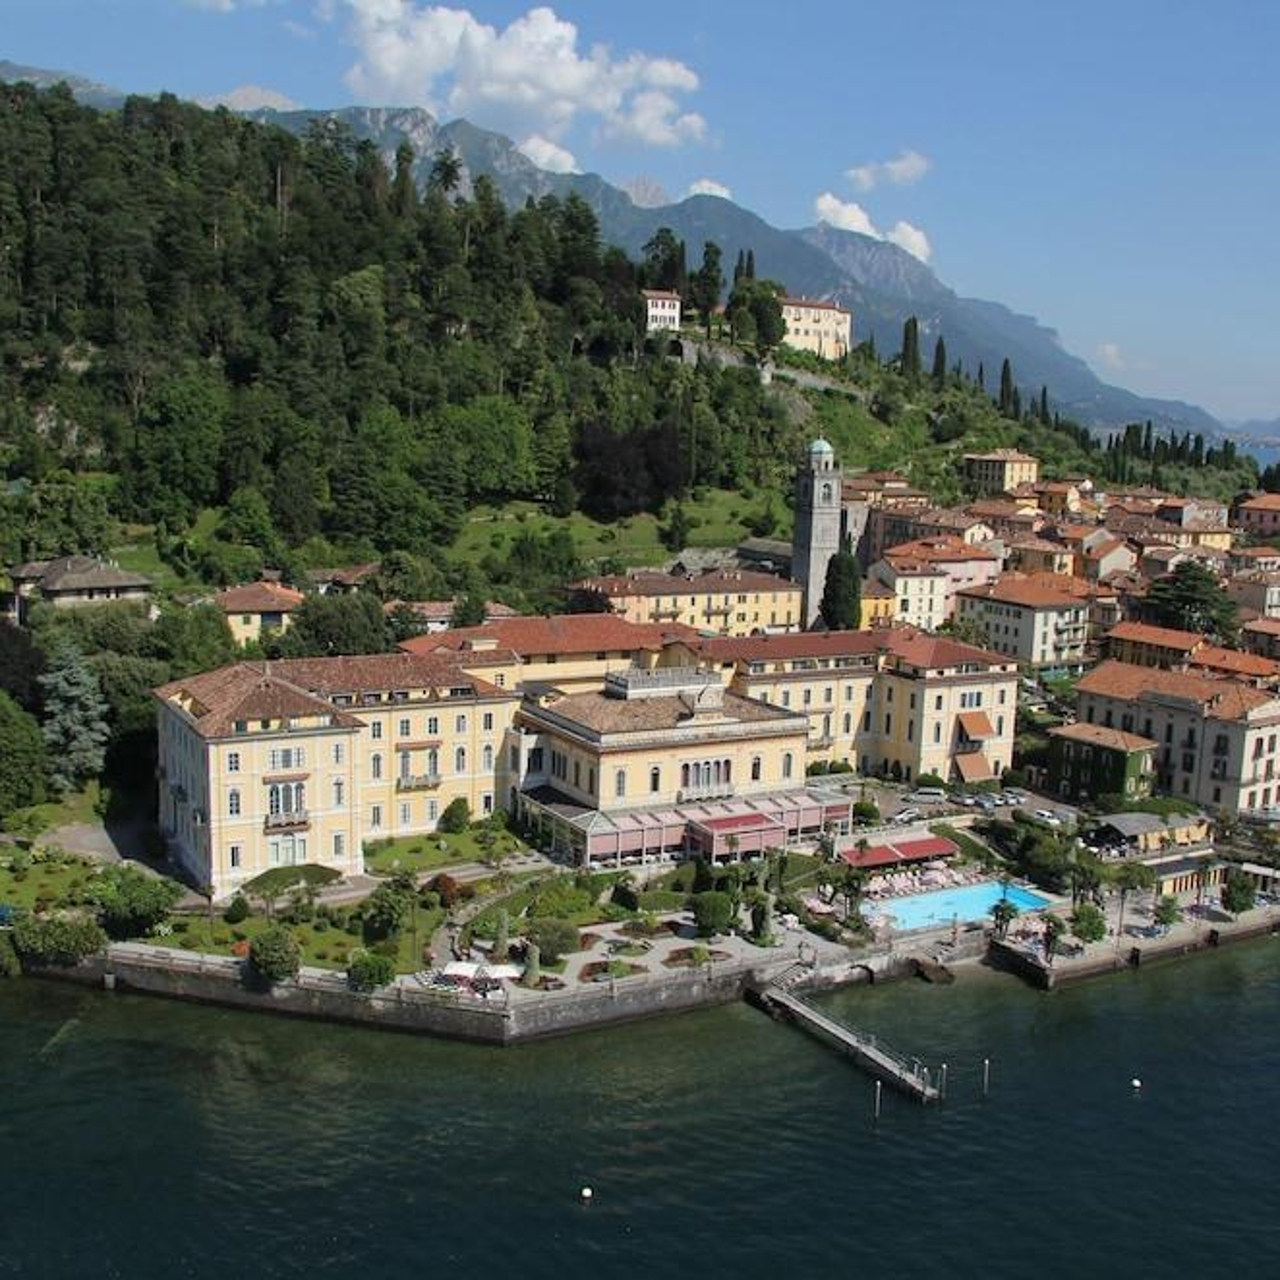 Grand Hotel Villa Serbelloni Italy At Hrs With Free Services